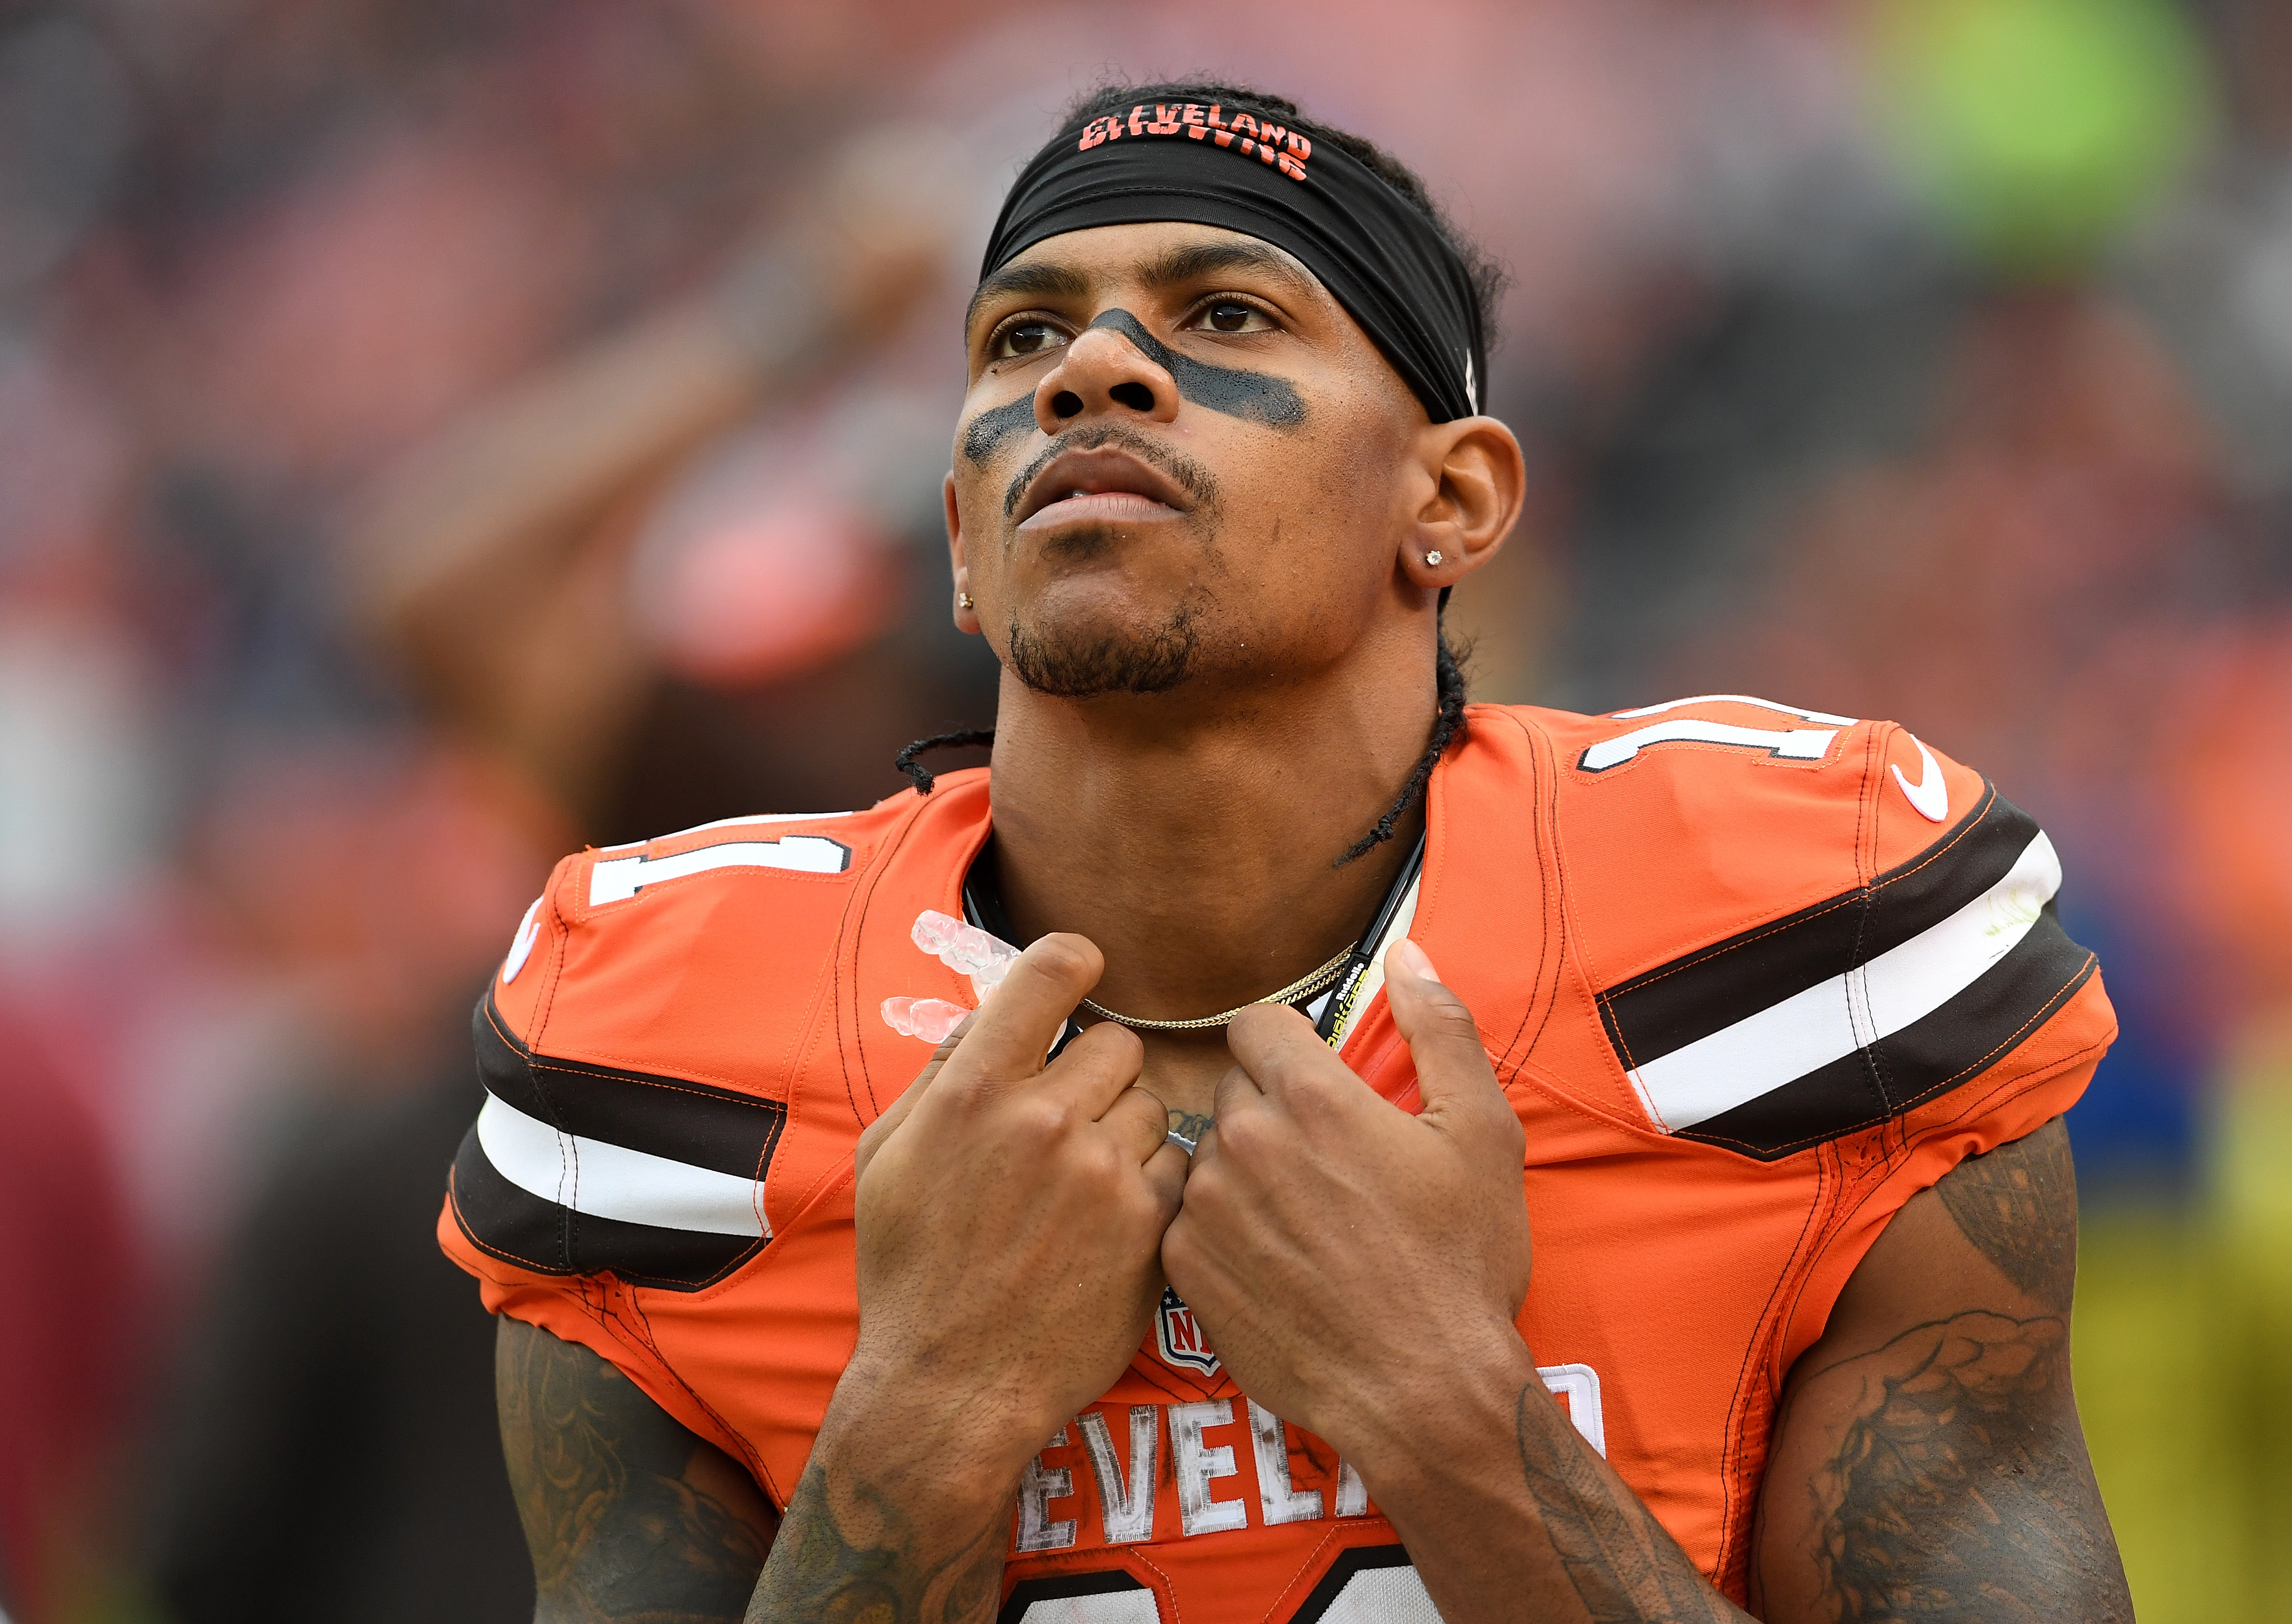 Former Browns WR Terrelle Pryor stabbed in Pittsburgh